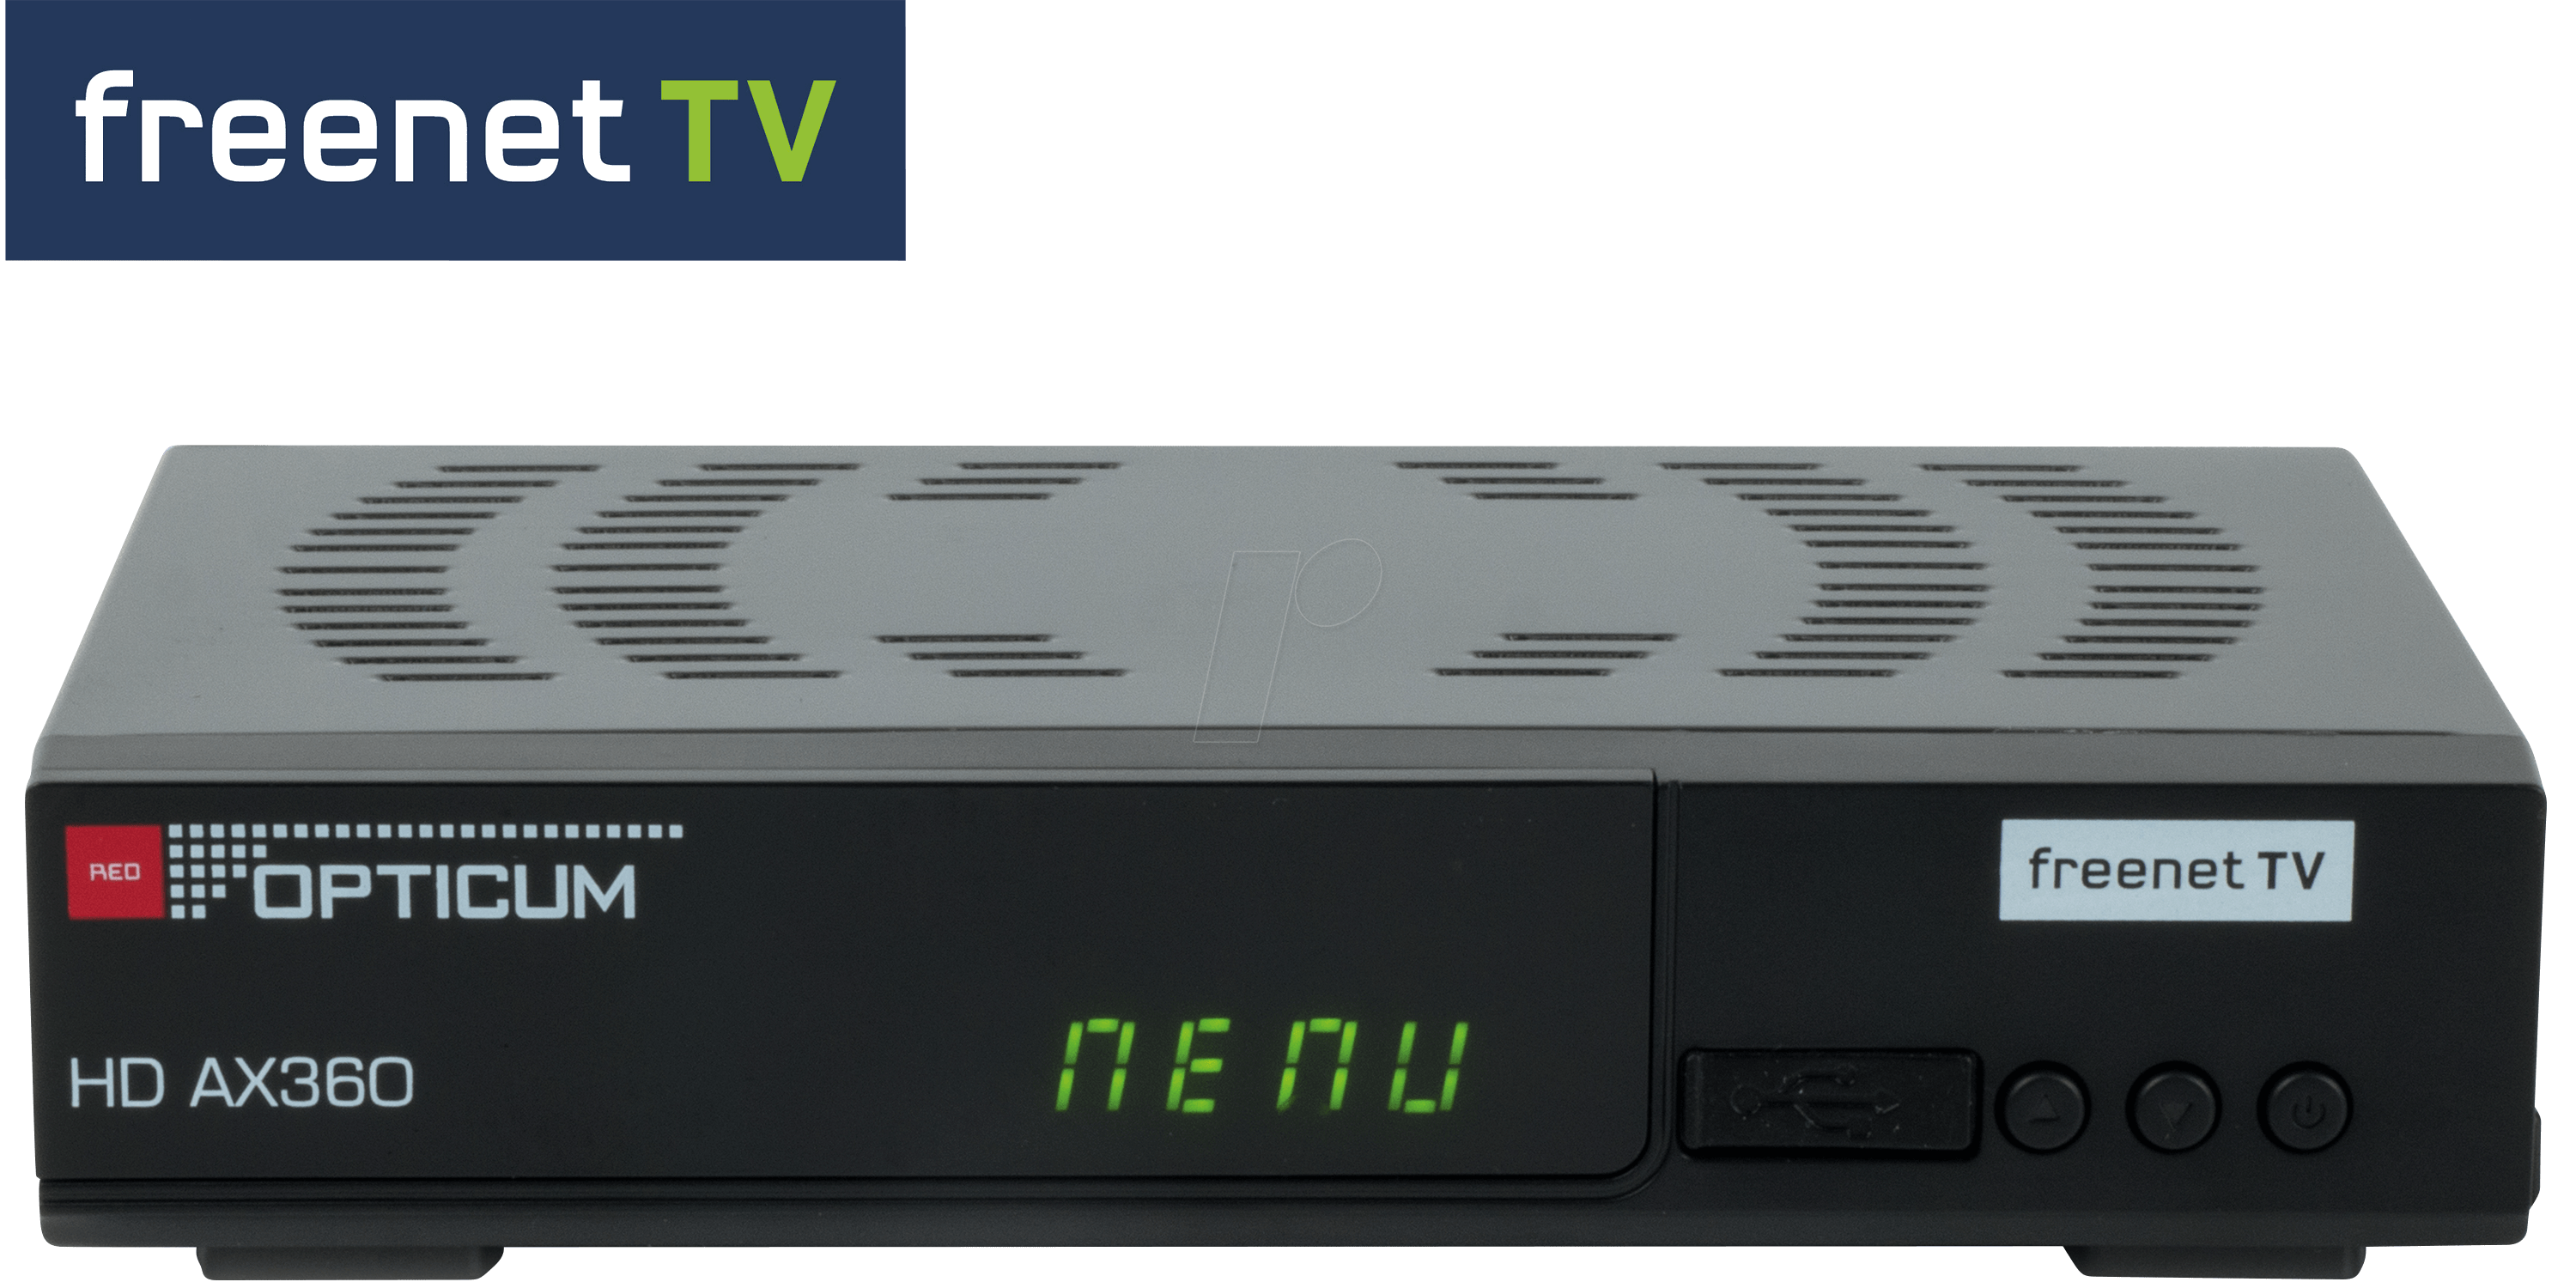 OPTICUM 20015 - Receiver, DVB-T2, full HD, free...